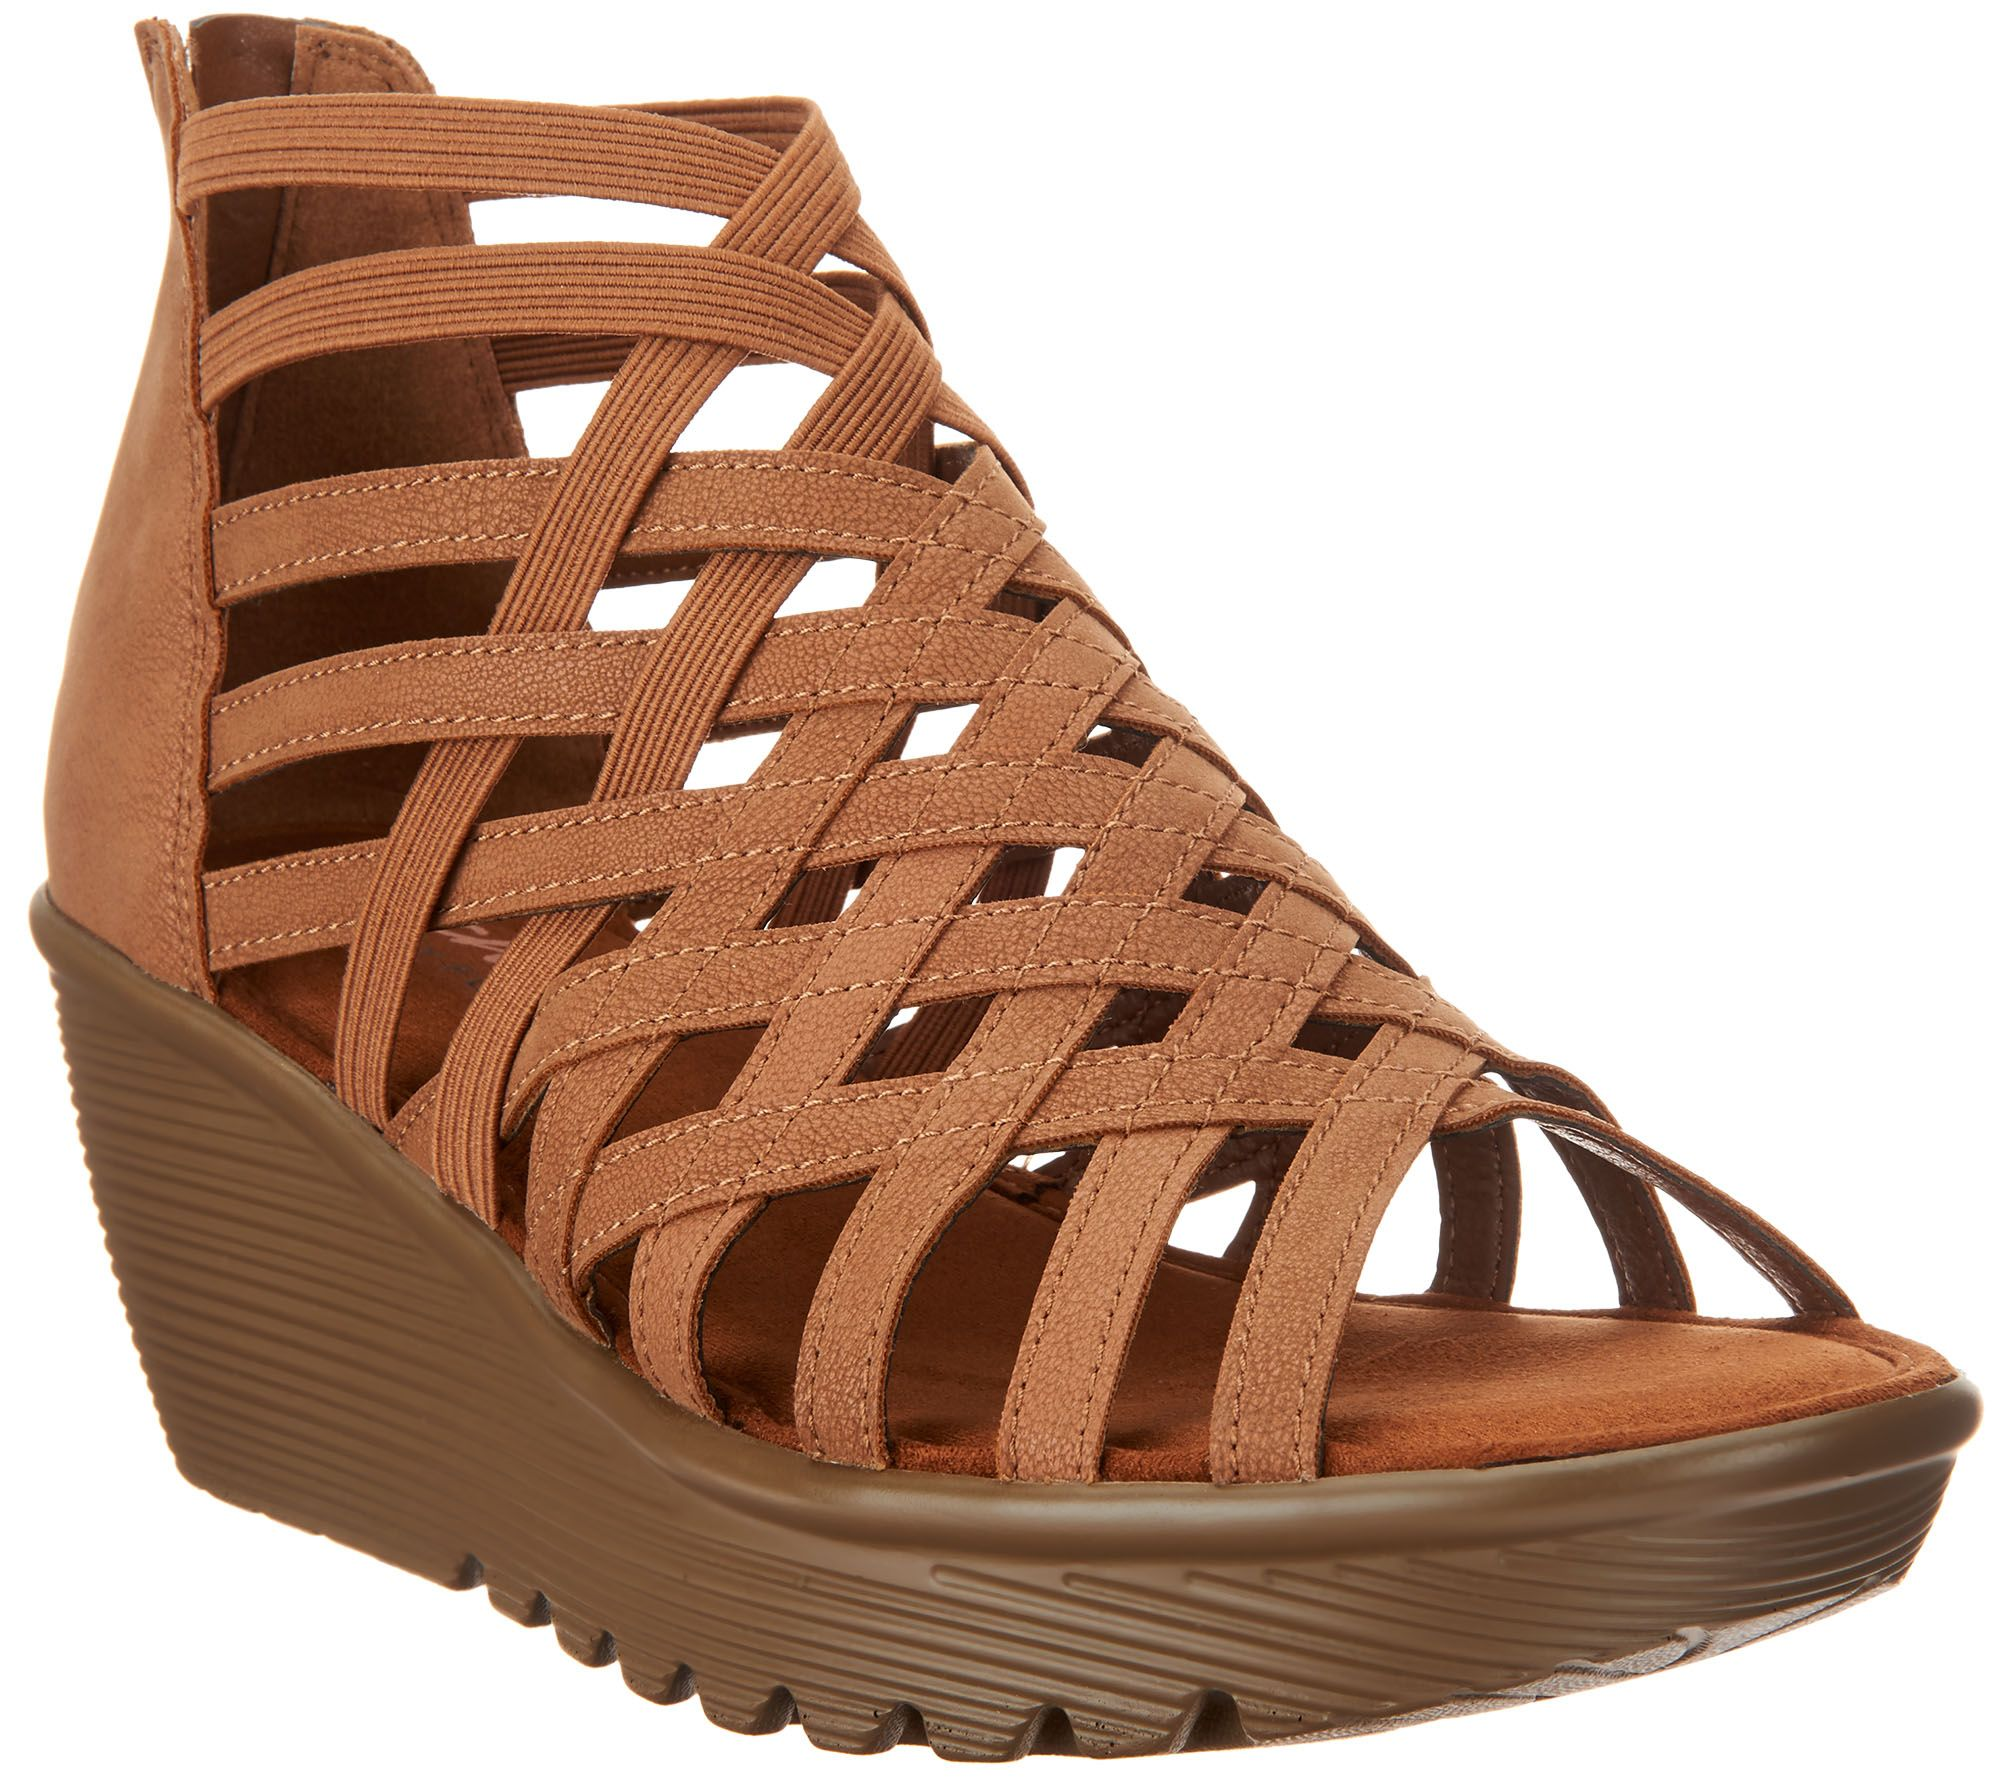 d75fd4e11b8f21 Skechers Peep-Toe Caged Wedges - Dream Queen - Page 1 — QVC.com